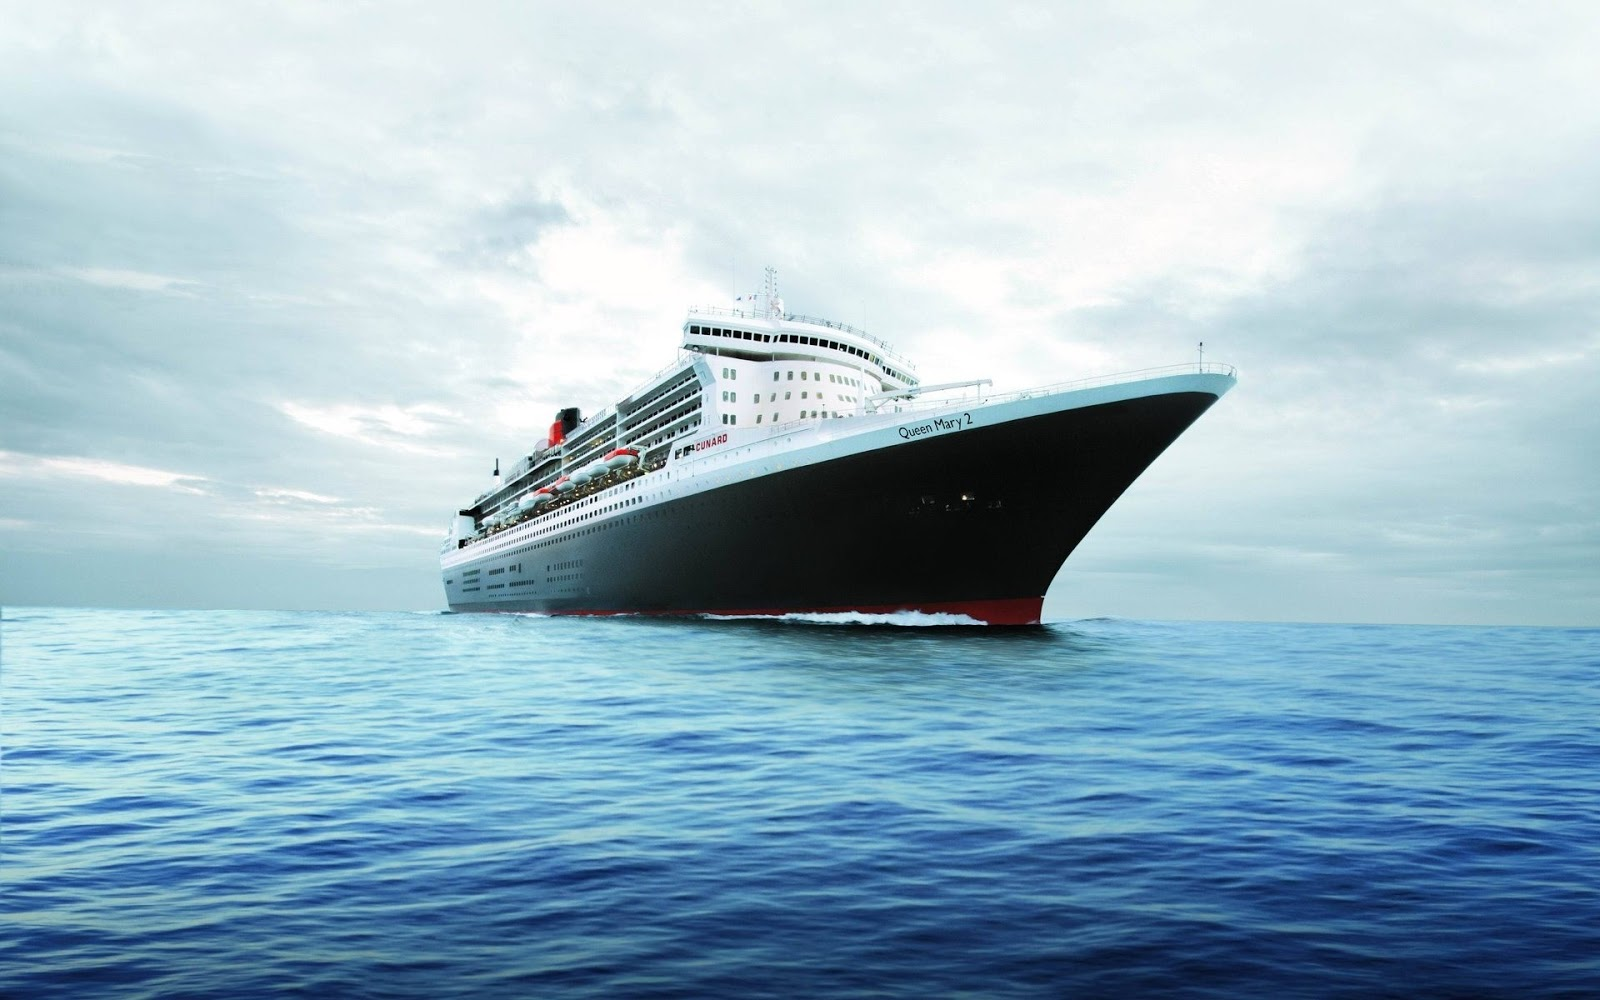 Cruise Ship HD Wallpapers Cruise Ship HD Wallpapers Check out the 1600x1000